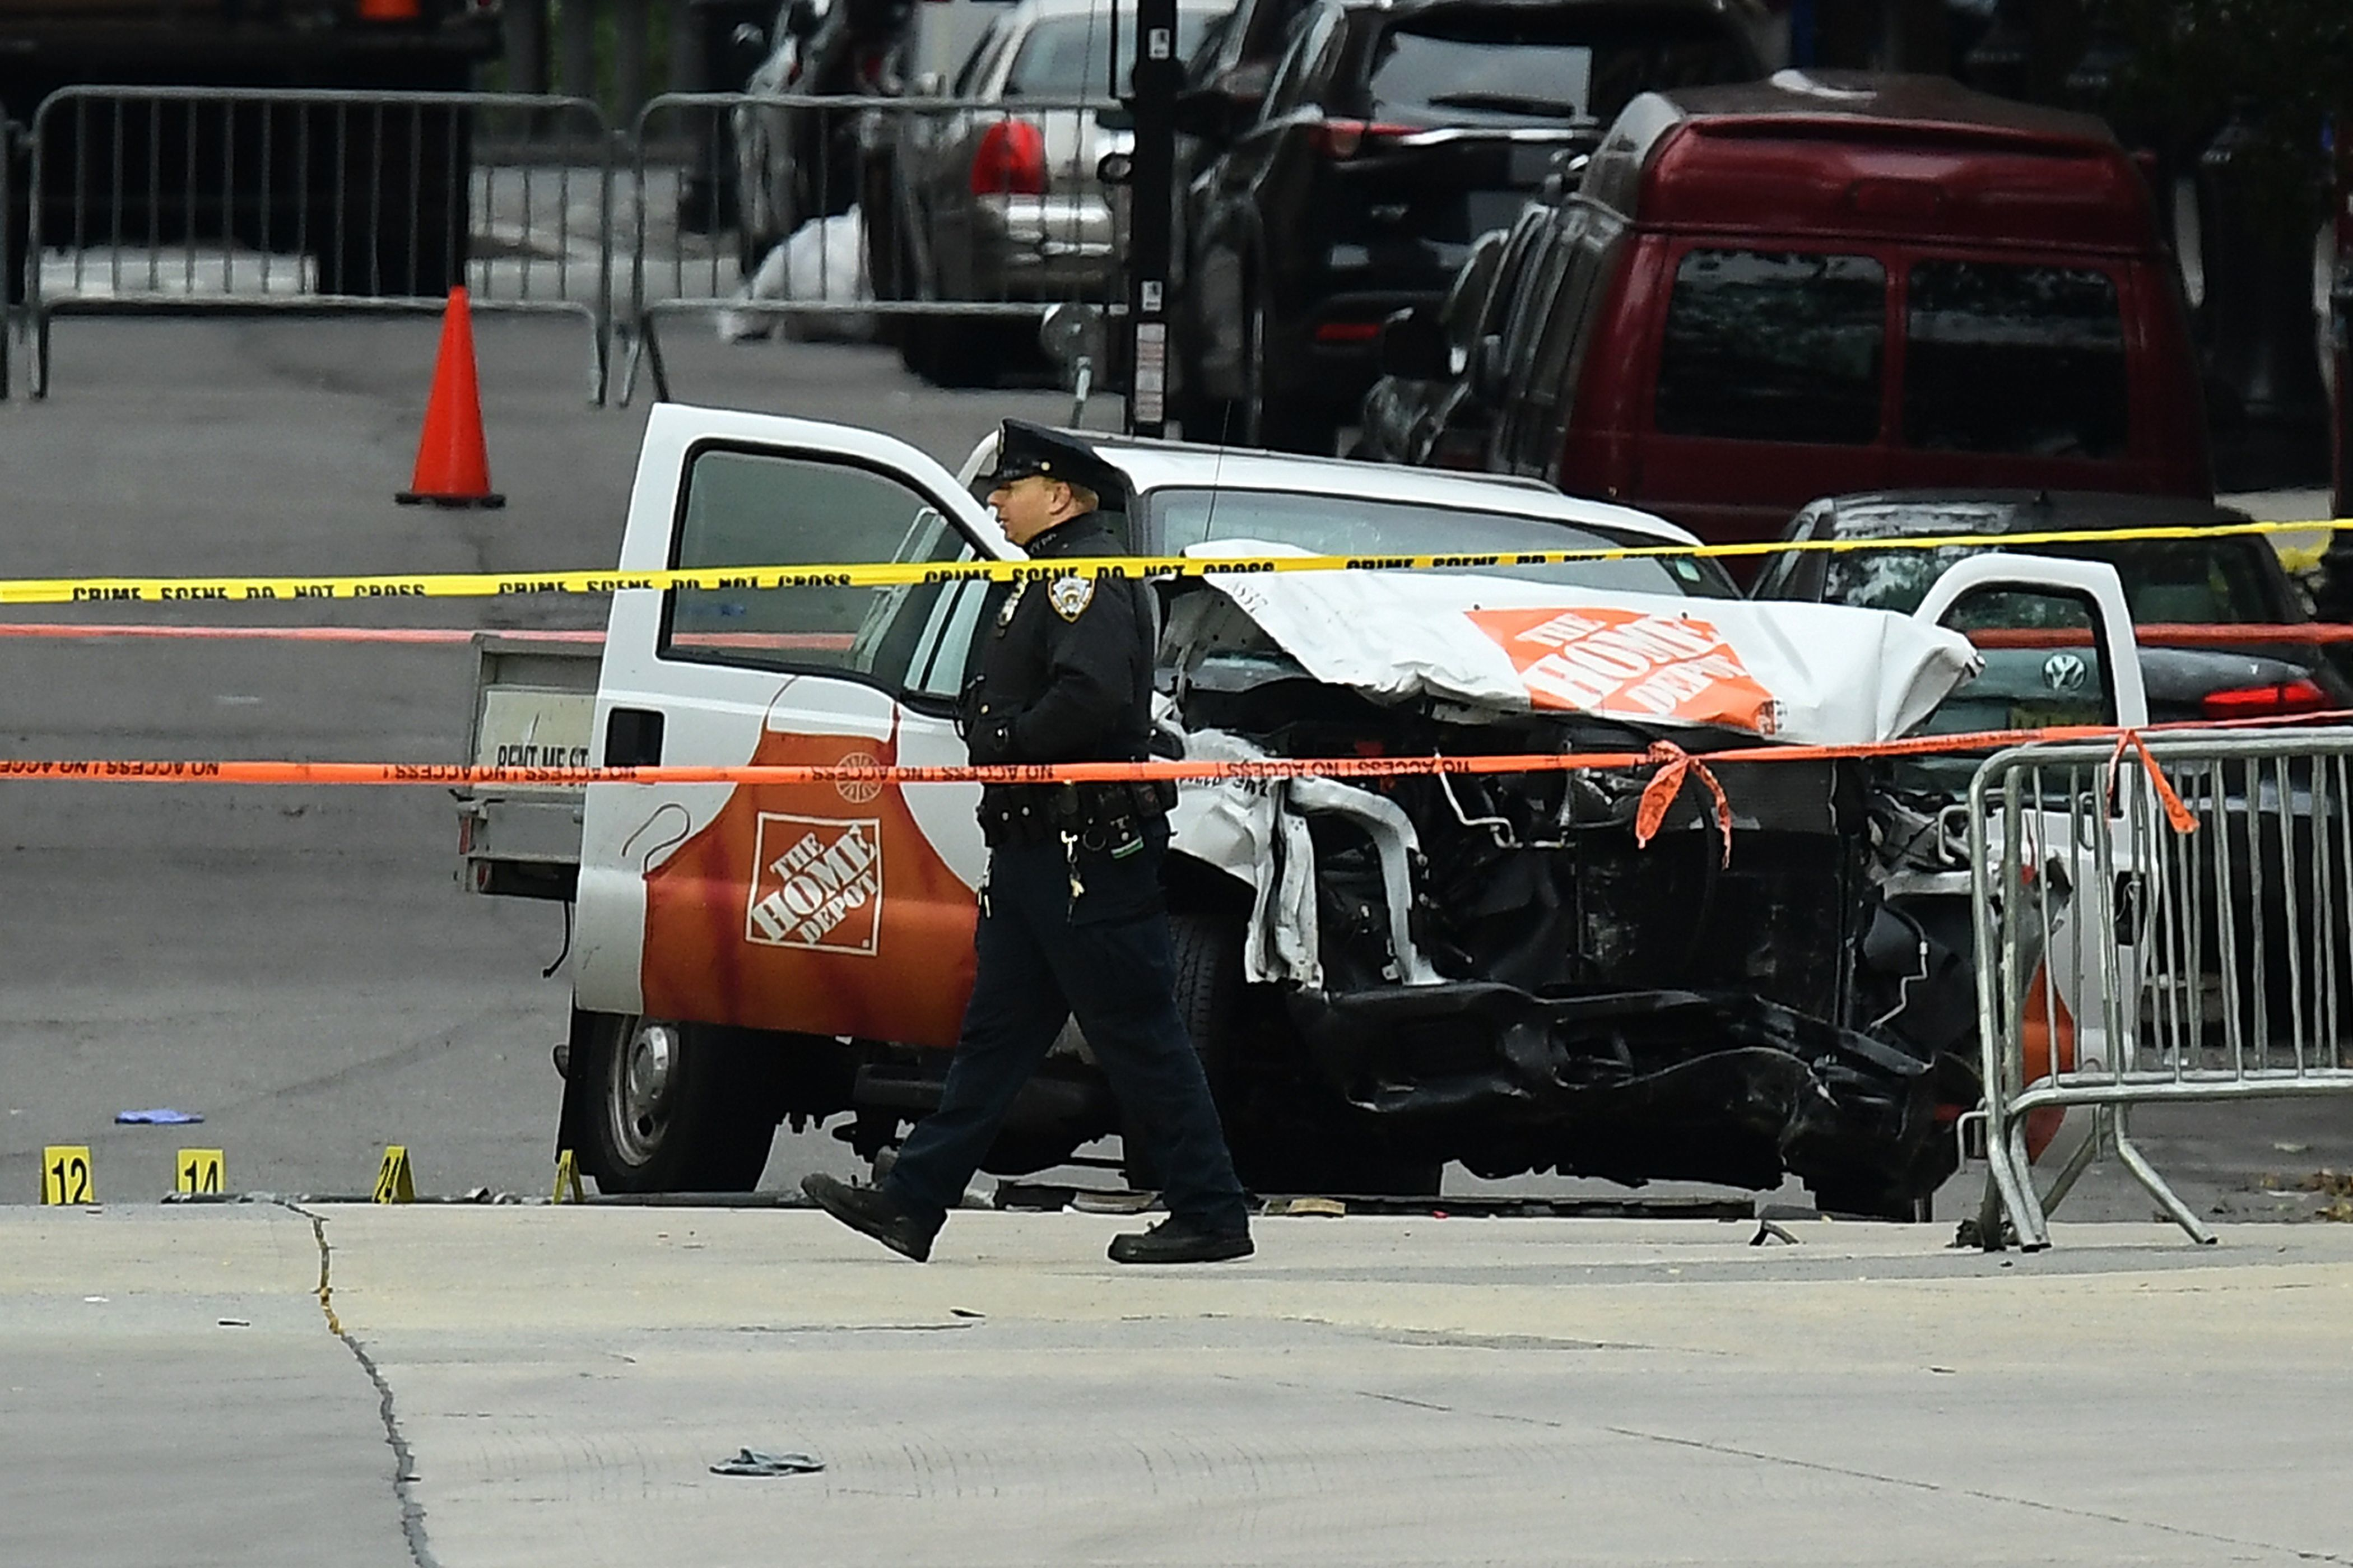 A police officer walks past the wreckage of a Home Depot pickup truck, a day after it was used in an terror attack, in New York on November 1, 2017. The pickup truck driver who plowed down a New York cycle path, killing eight people, in the city's worst attack since September 11, was associated with the Islamic State group but 'radicalized domestically,' the state's governor said Wednesday. The driver, identified as Uzbek national named Sayfullo Saipov was shot by police in the stomach at the end of the rampage, but he was expected to survive. / AFP PHOTO / Jewel SAMAD        (Photo credit should read JEWEL SAMAD/AFP/Getty Images)